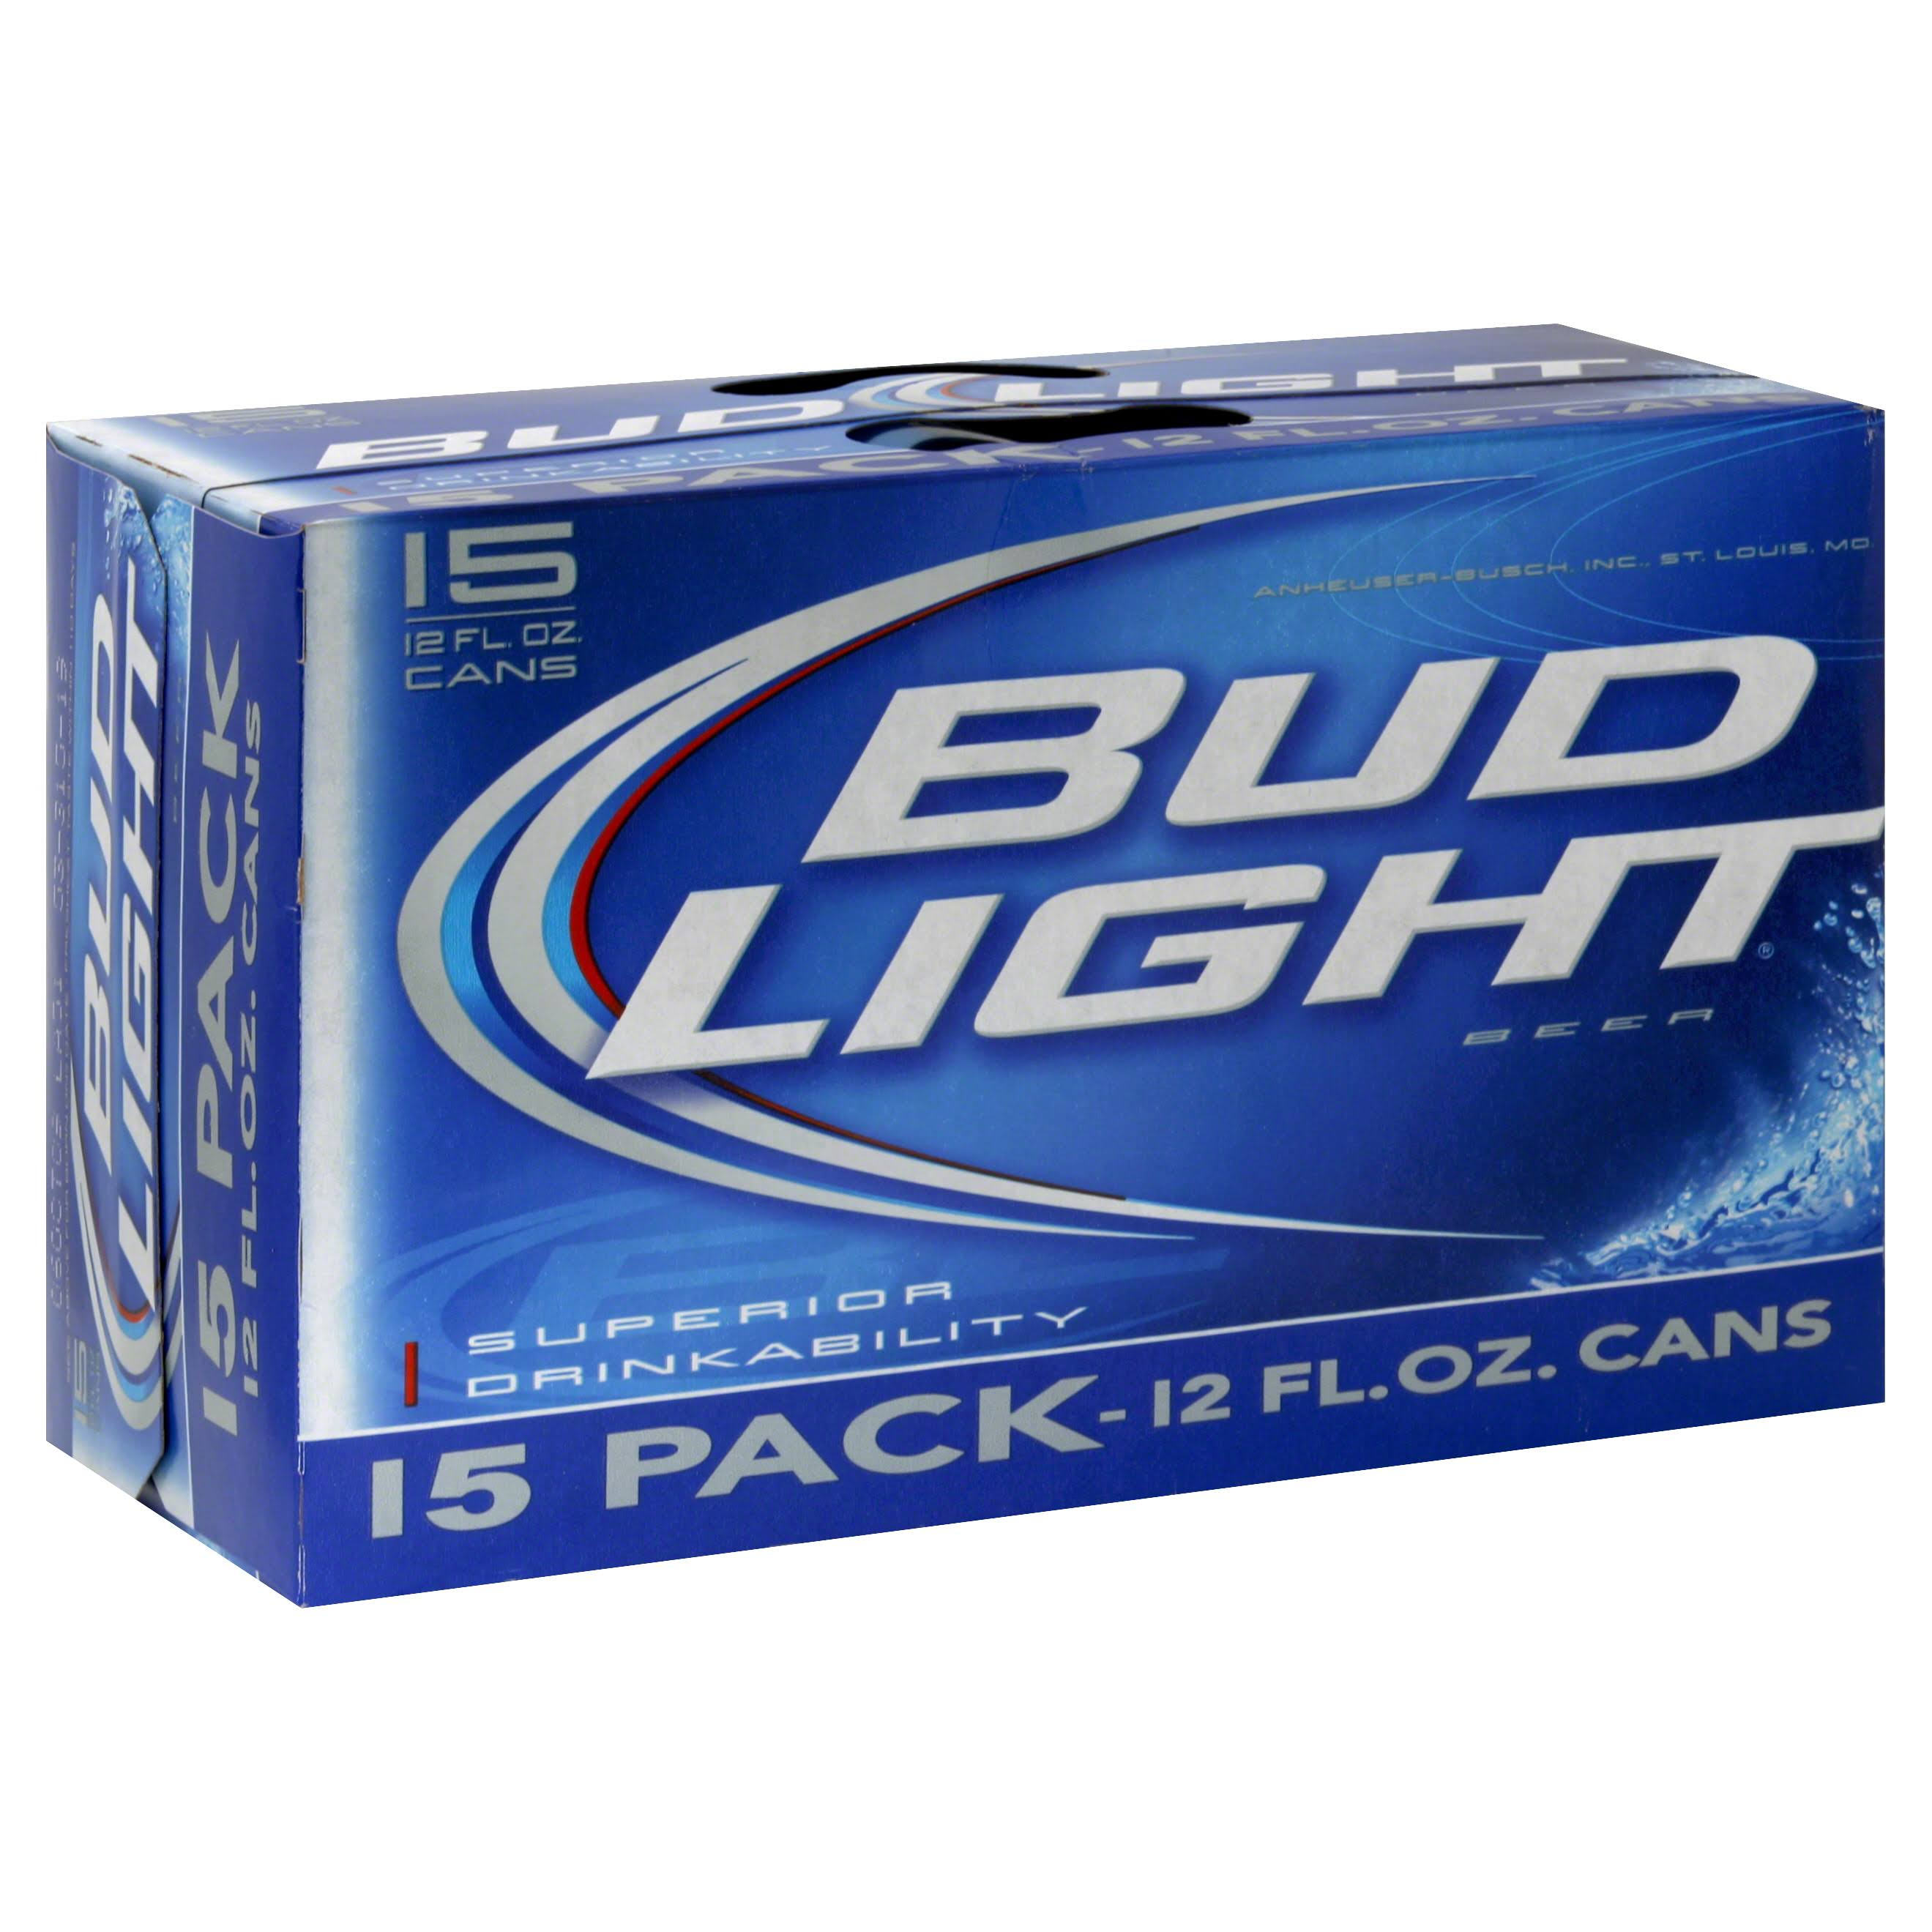 Bud Light Beer - 12oz, 15 Pack